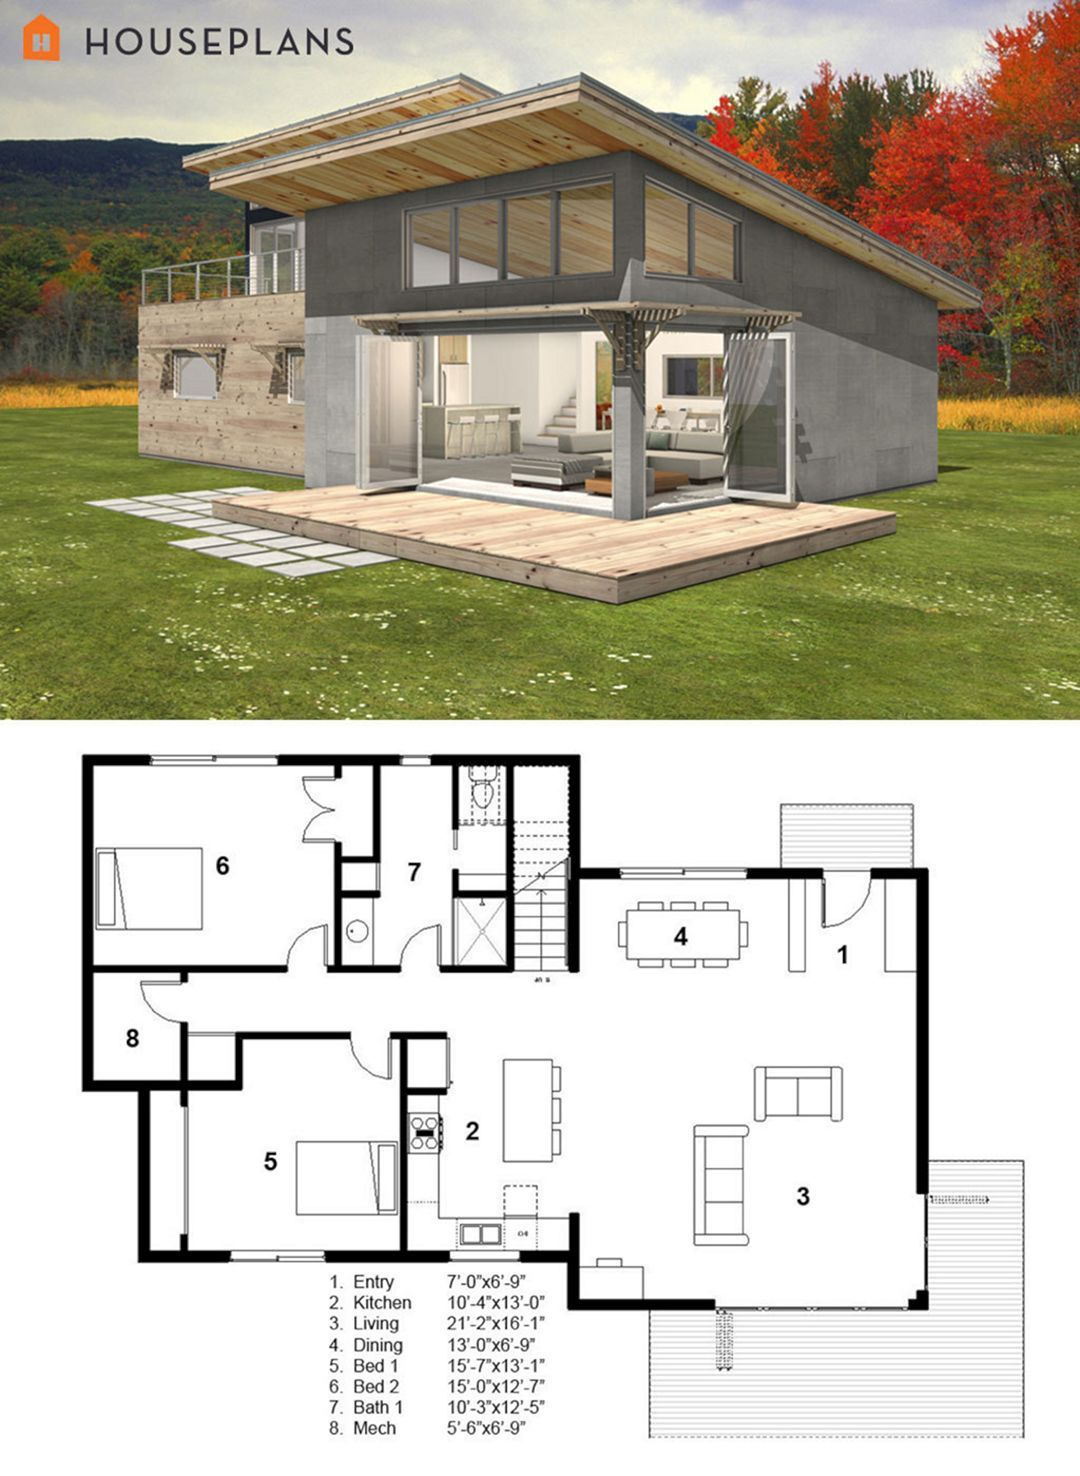 Simple Small House Plans Beautiful the Best Modern Tiny House Design Small Homes Inspirations